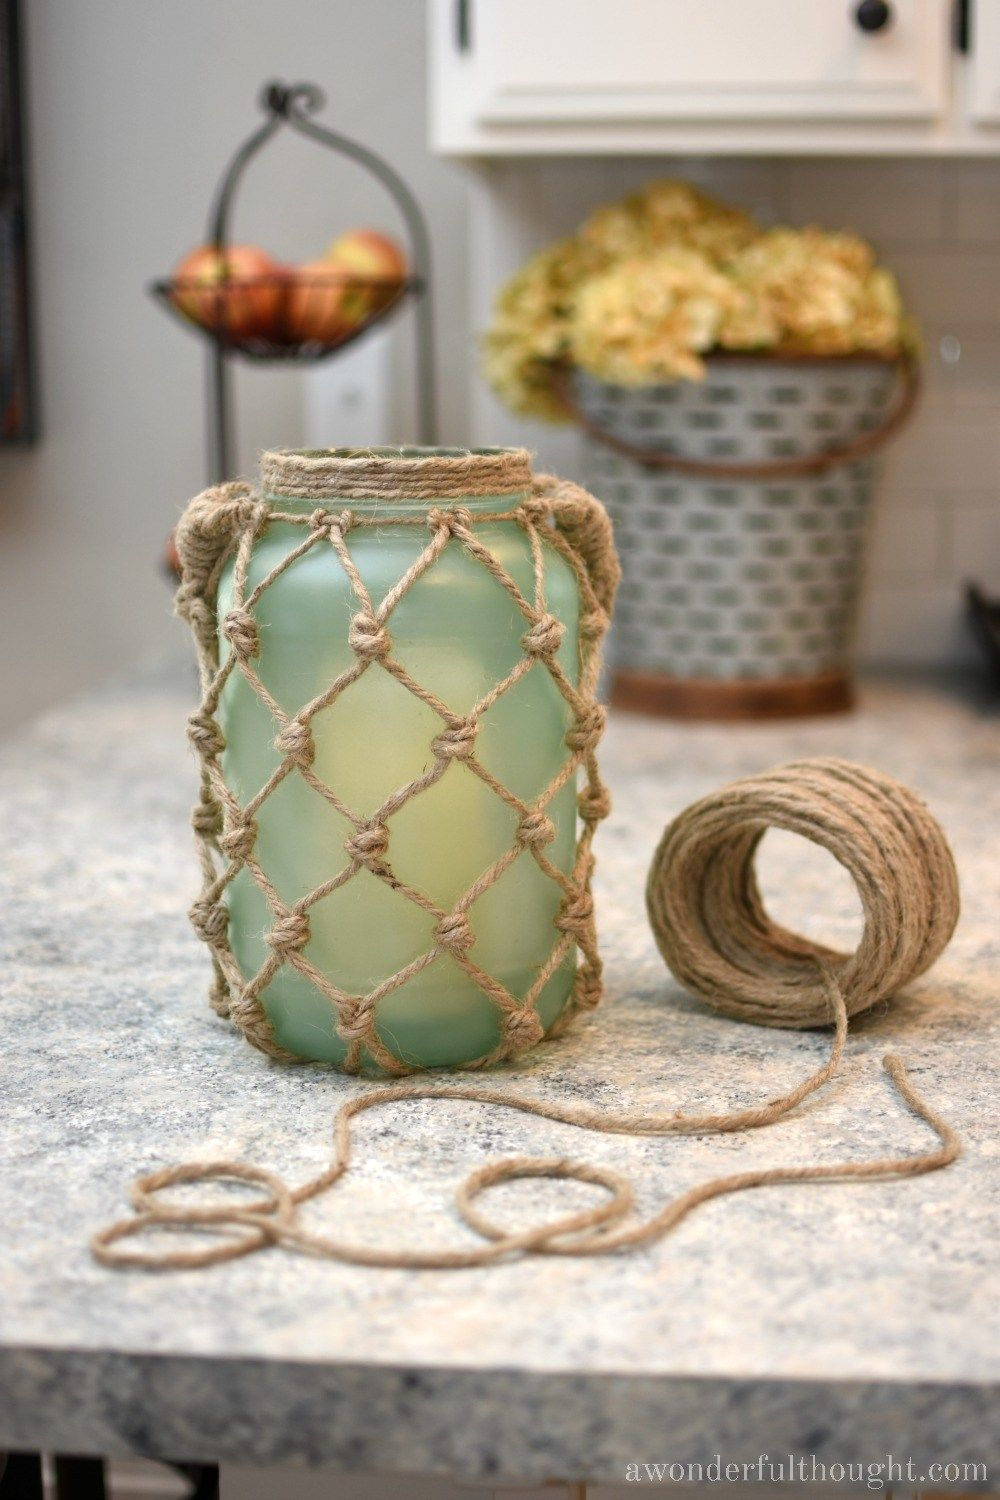 DIY Sea Glass Rope Lantern is part of Diy Sea Glass Rope Lantern A Wonderful Thought - Learn how to make your own DIY sea glass rope lantern from a pickle jar! Perfect to use with your beach or coastal decorations